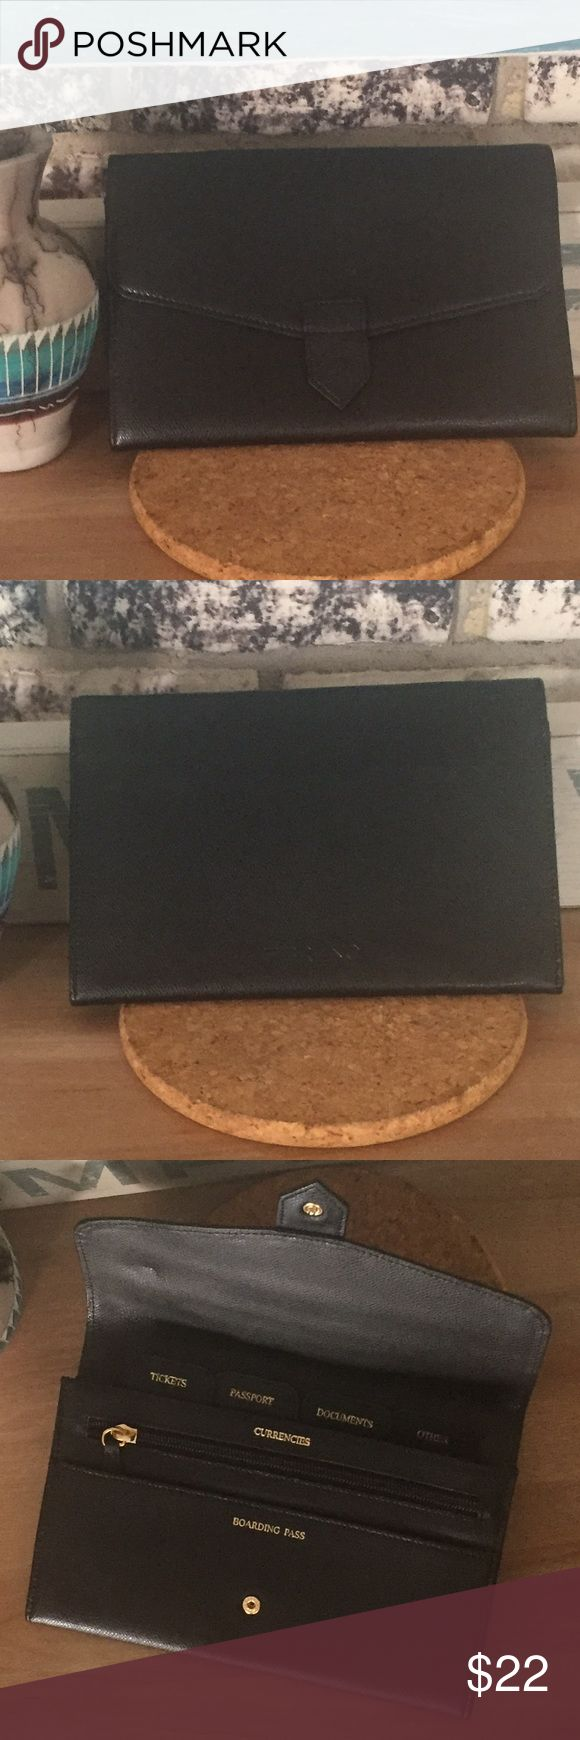 """Handy Black Travel Passport Wallet Excellent for keeping all of your important travel documents together & organized in one slim, convenient holder. Pebbled black vegan leather with gold hardware. Snap closure opens to nicely labeled dividers for Boarding Pass, Currencies, Tickets, Passport, Documents & Other. Zip pocket for loose change/currency. I never used this. Approx. size: 9"""" x 6"""" x 1/2"""" Accessories"""